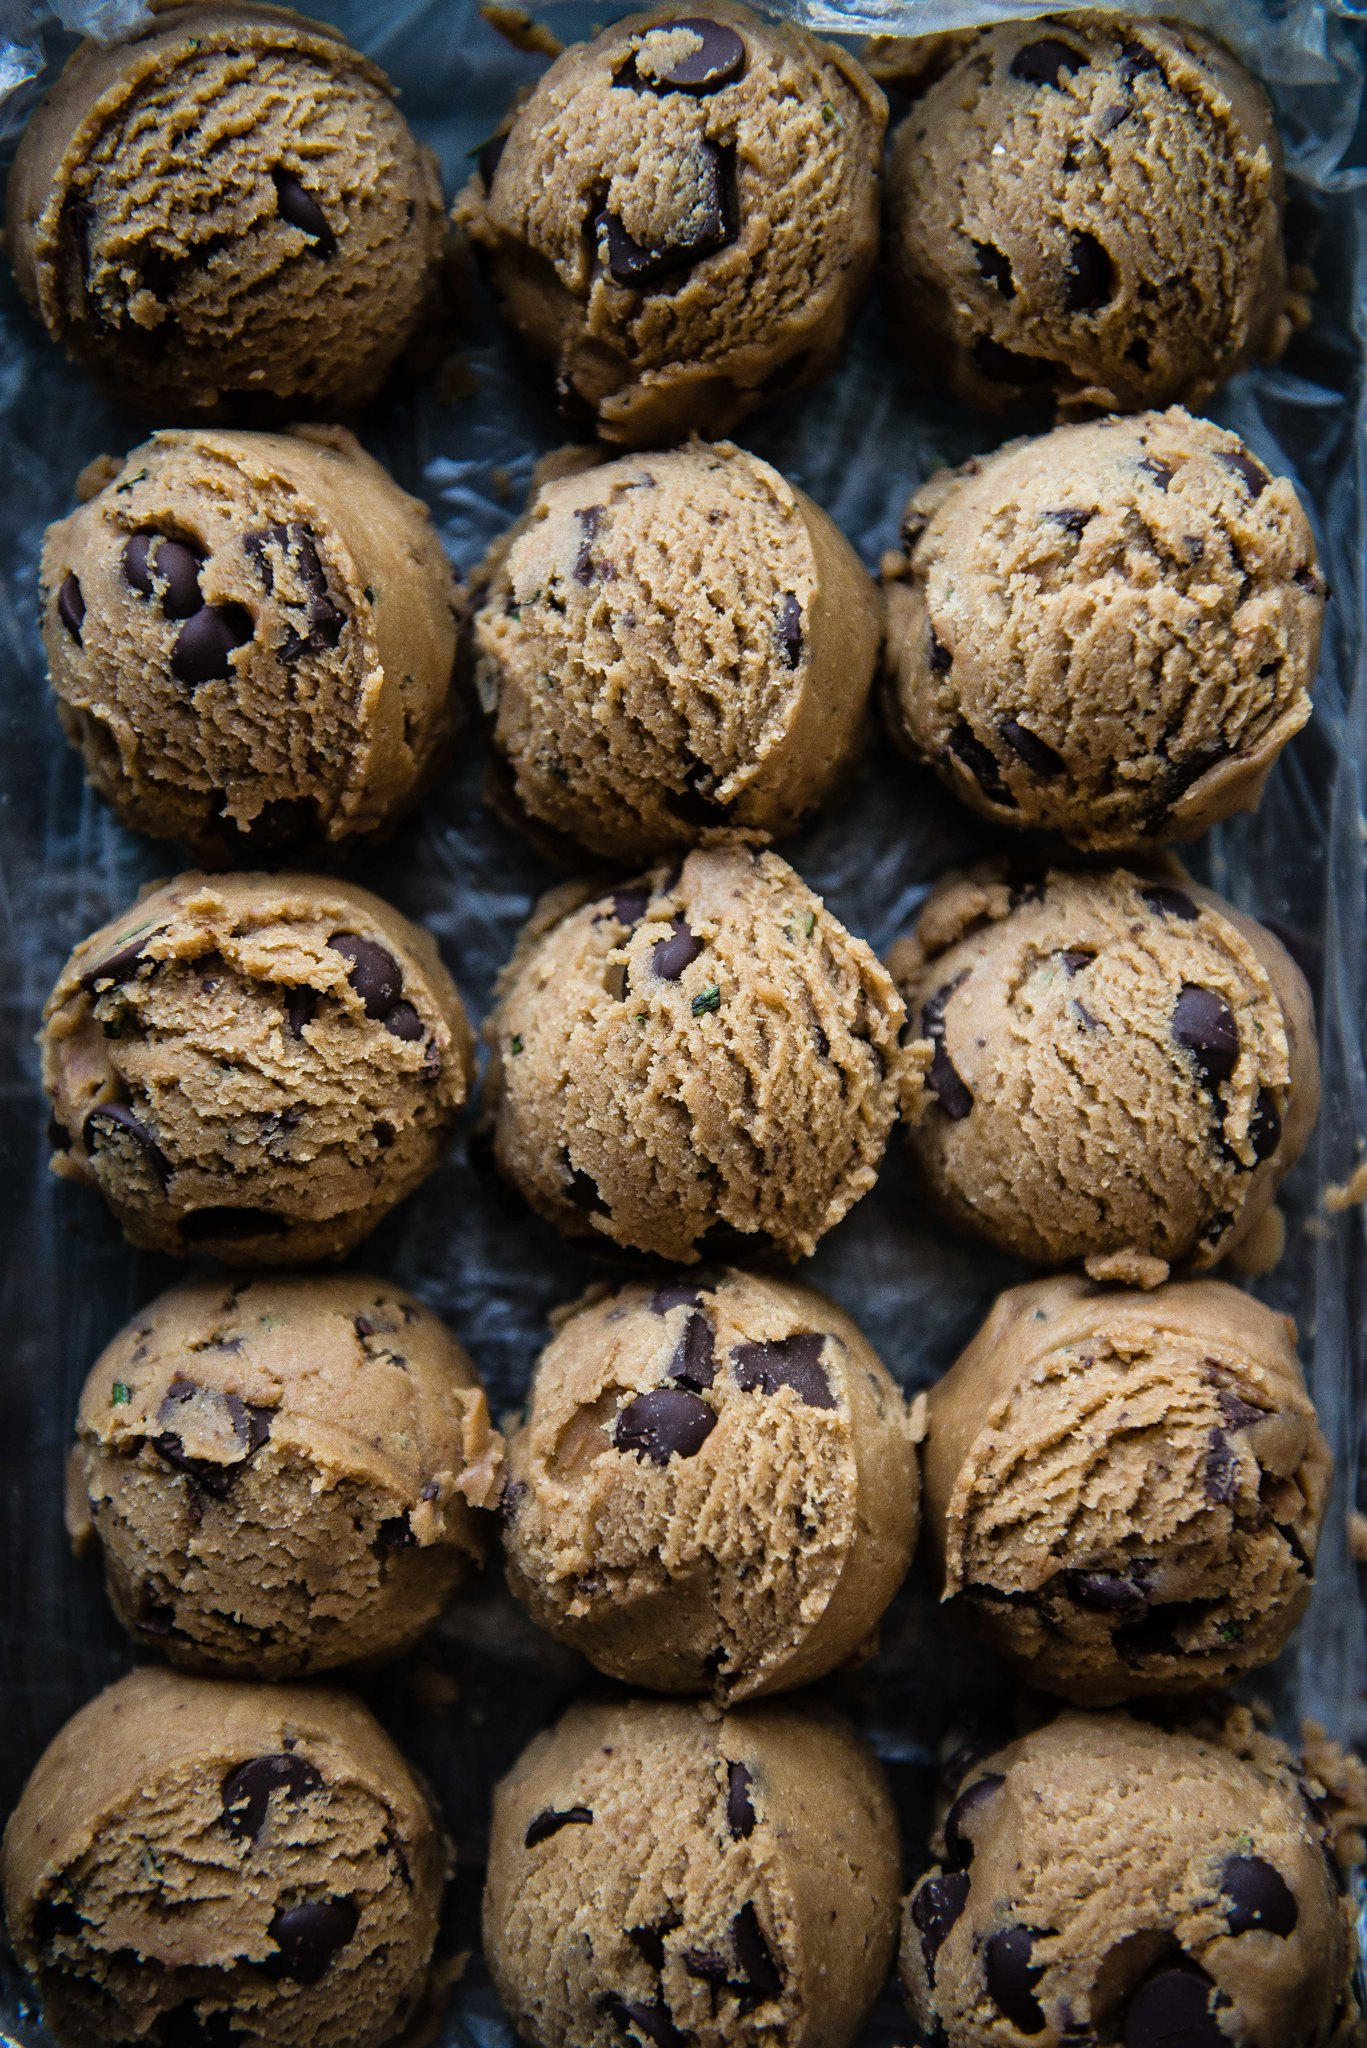 craggy chocolate chip cookies